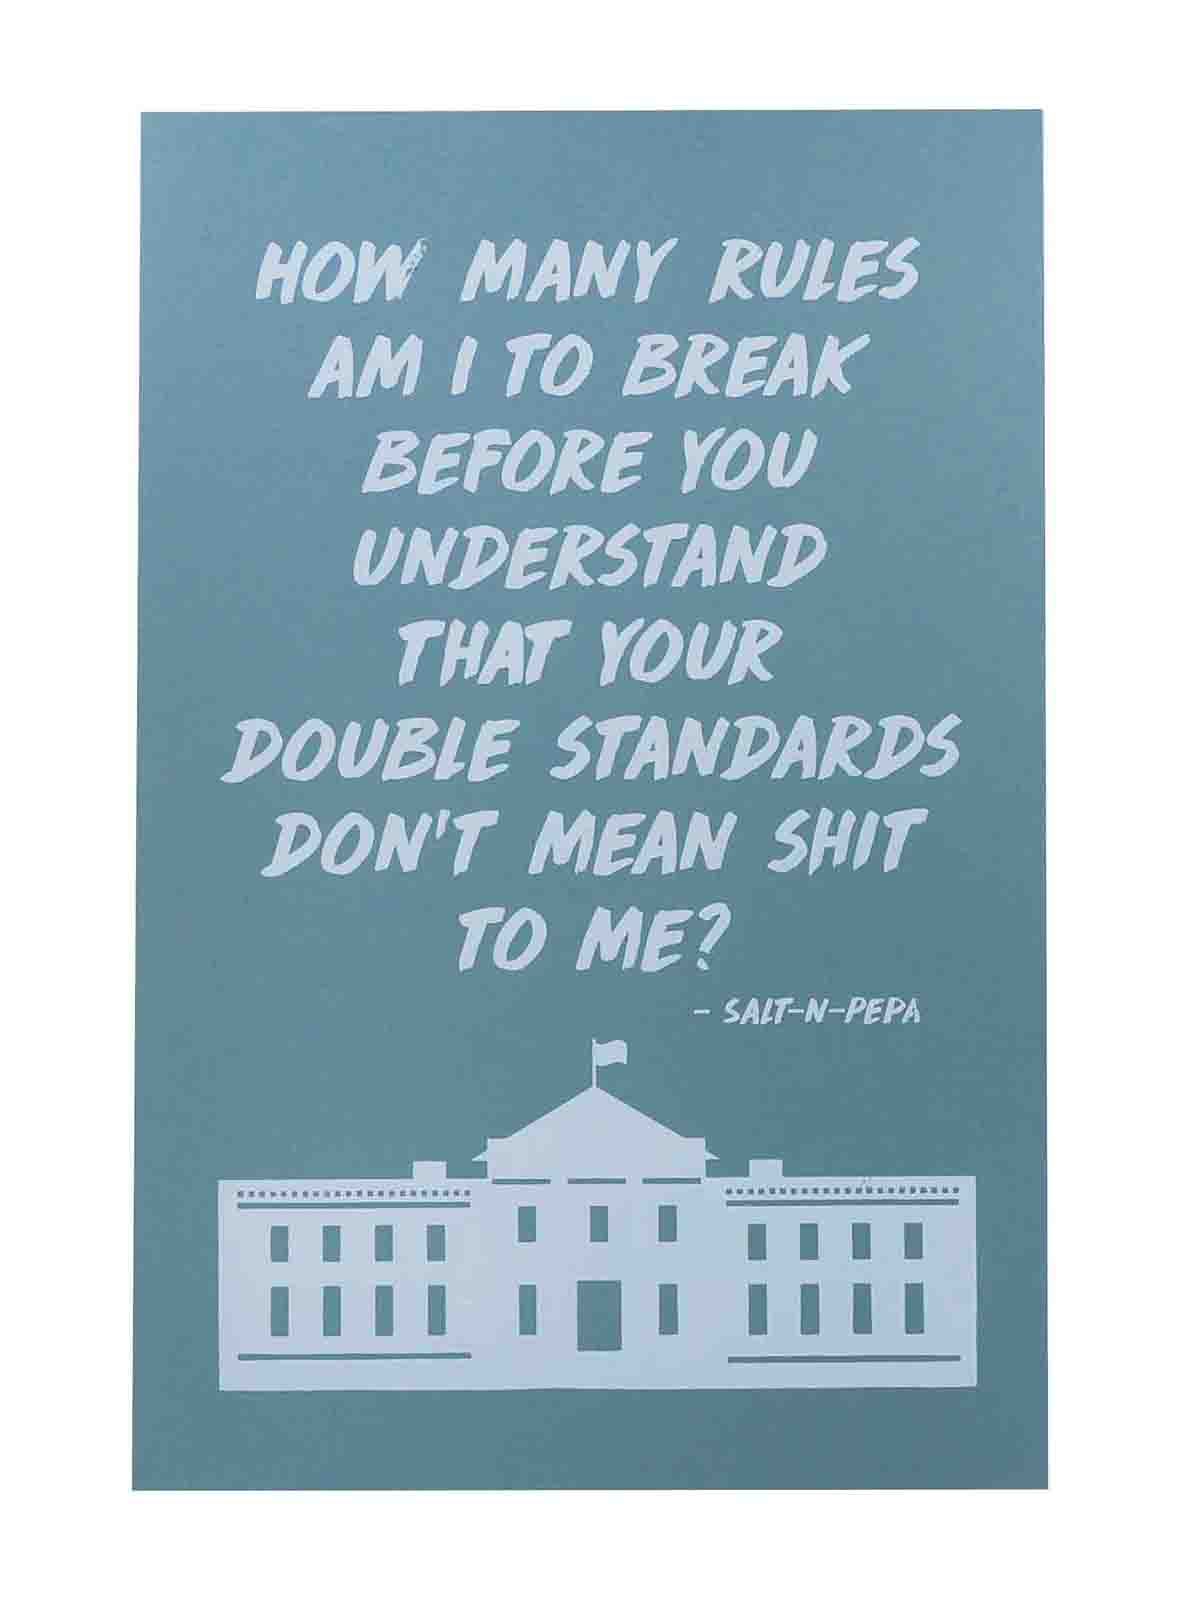 Ape_Bleakney_'How Many Rules Am I To Break' Women's March Poster on Construction Steel Blue, 12.5''x19''.jpg